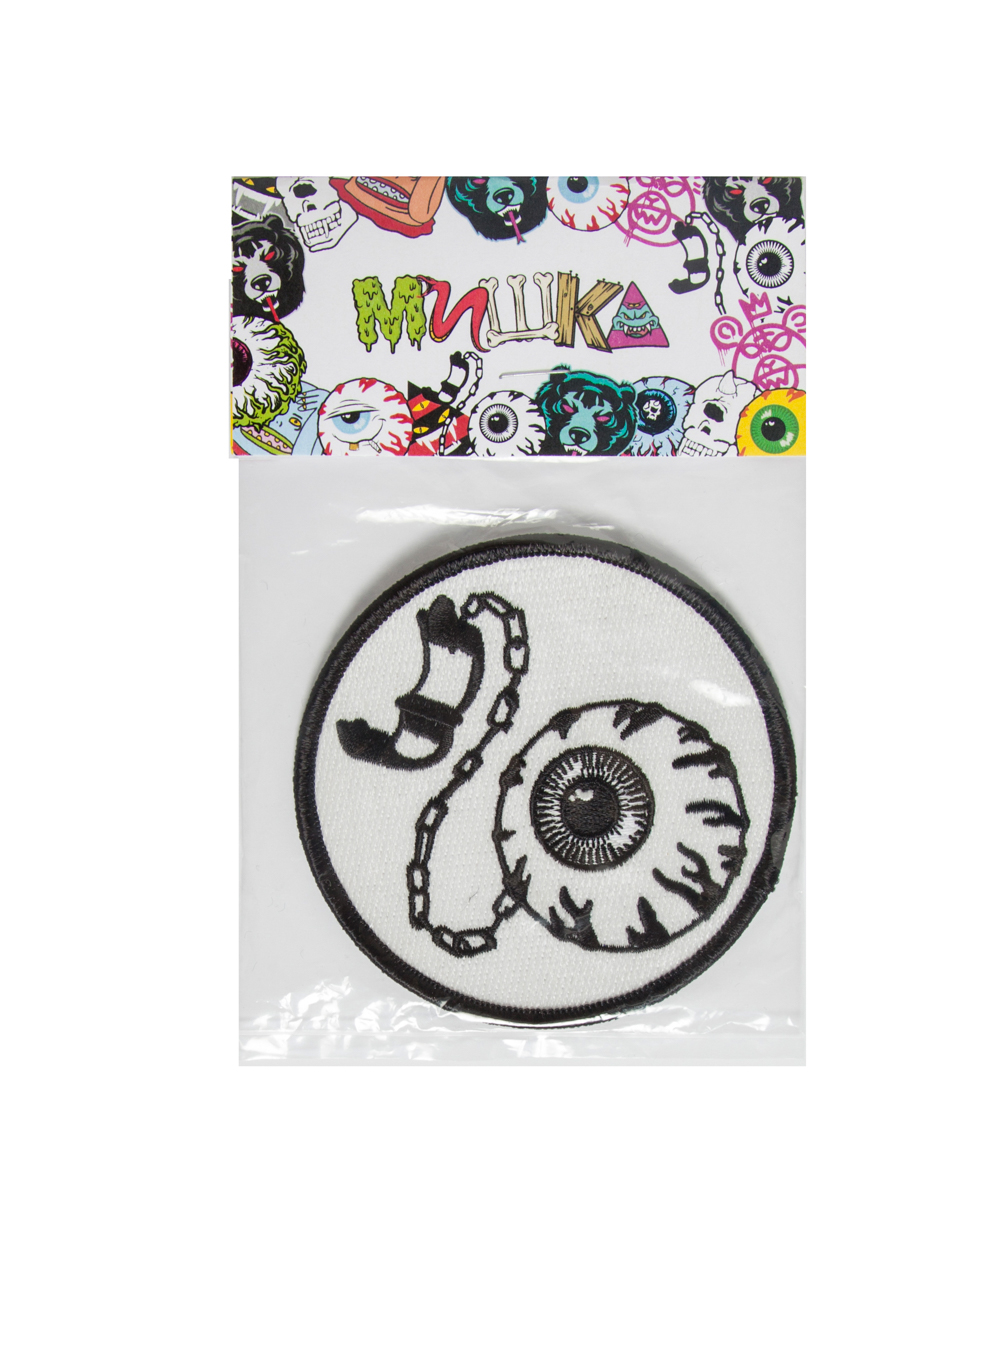 Mishka x Ball and Chain Co: Keep Watch Patch